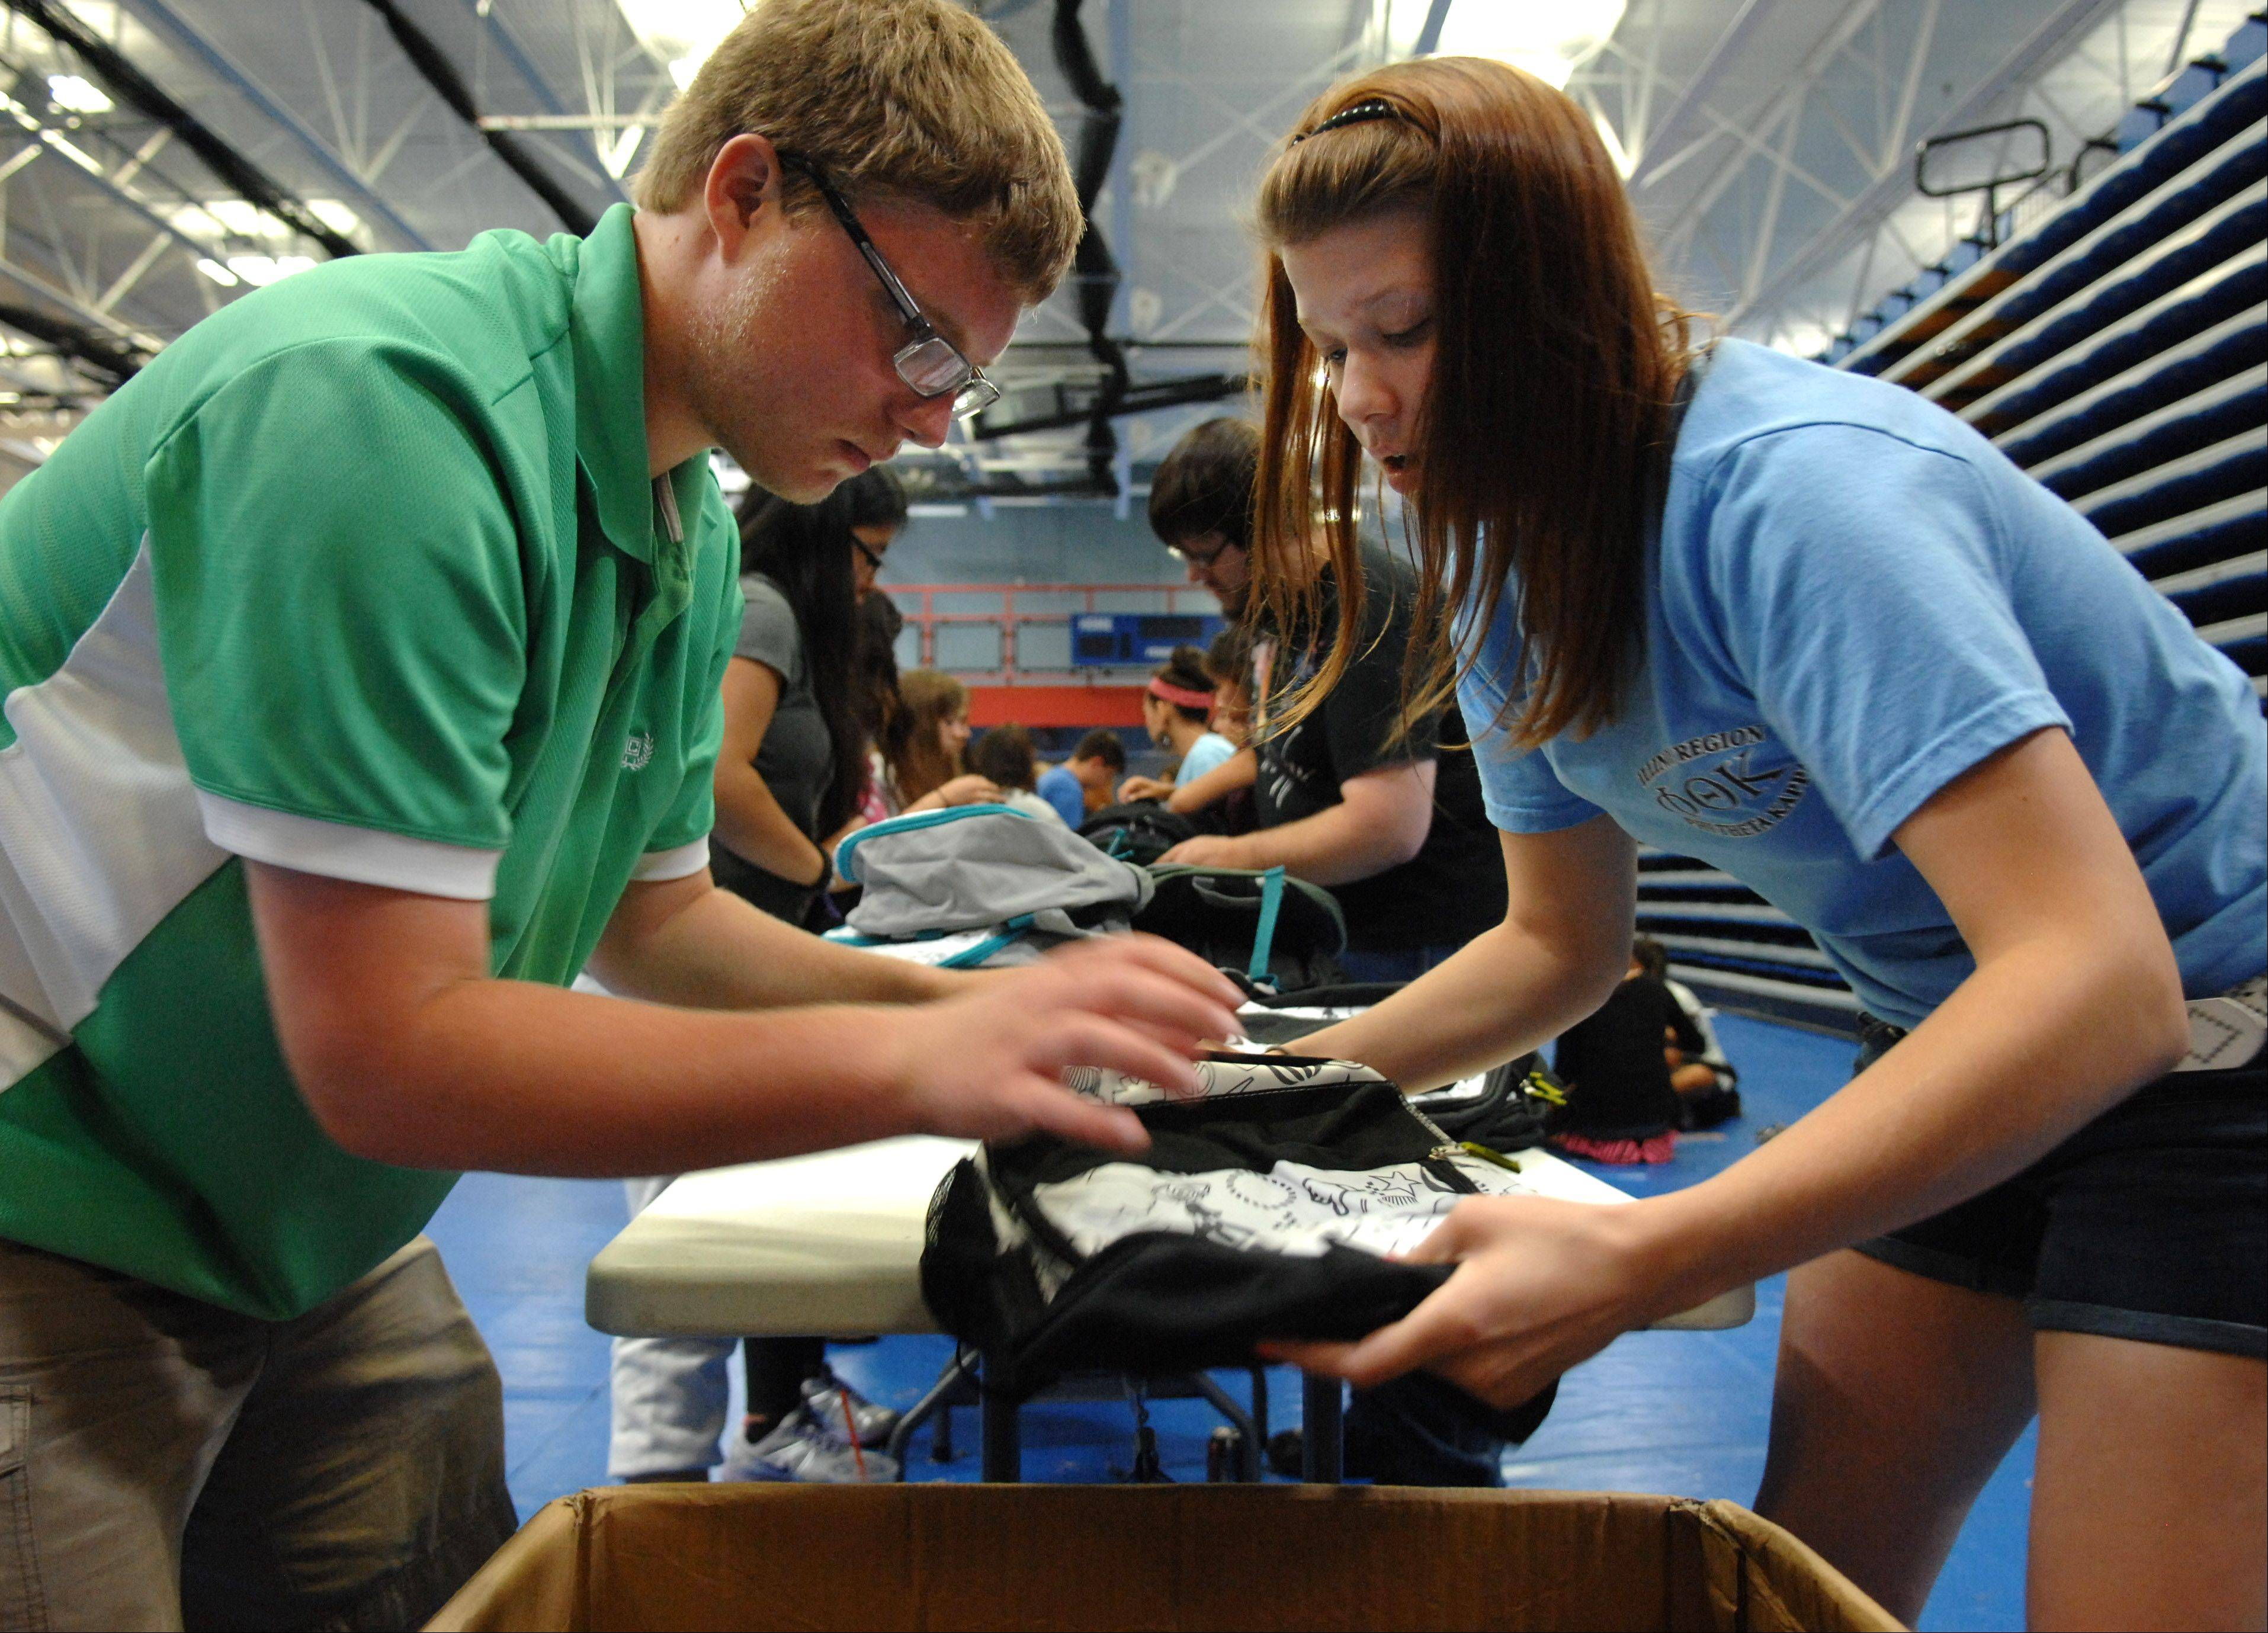 Volunteers Jacob Anderson of South Elgin and Libby Harvey of St. Charles pack donated school supplies into backpacks Friday for Elgin Community College's annual school supply giveaway. The packing started Thursday afternoon for the Saturday giveaway. They packed about 1,800 backpacks.